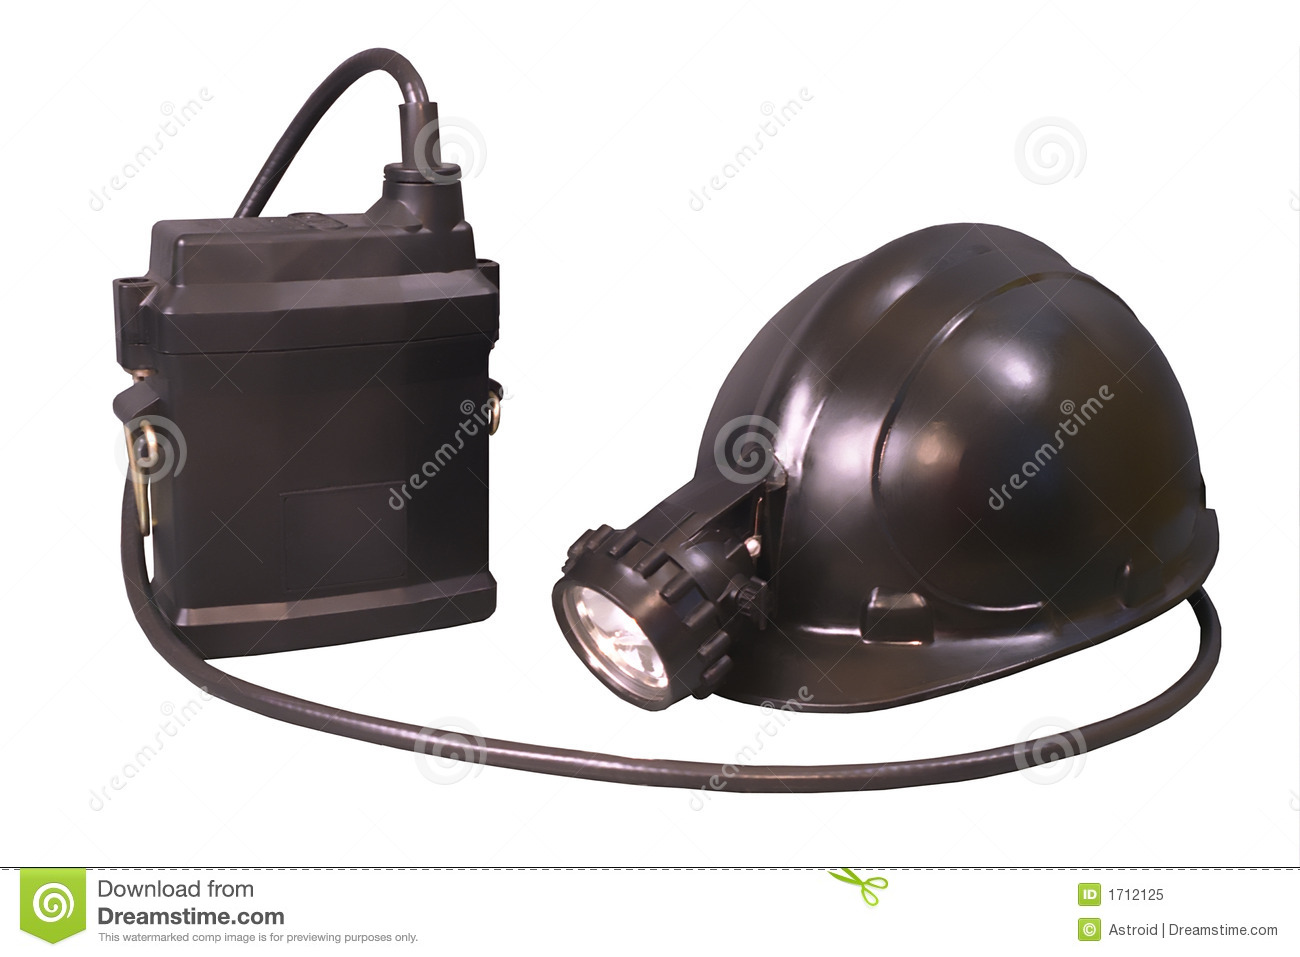 torche et casque de m moire pour le mineur et les ma tre nageurs photo libre de droits image. Black Bedroom Furniture Sets. Home Design Ideas